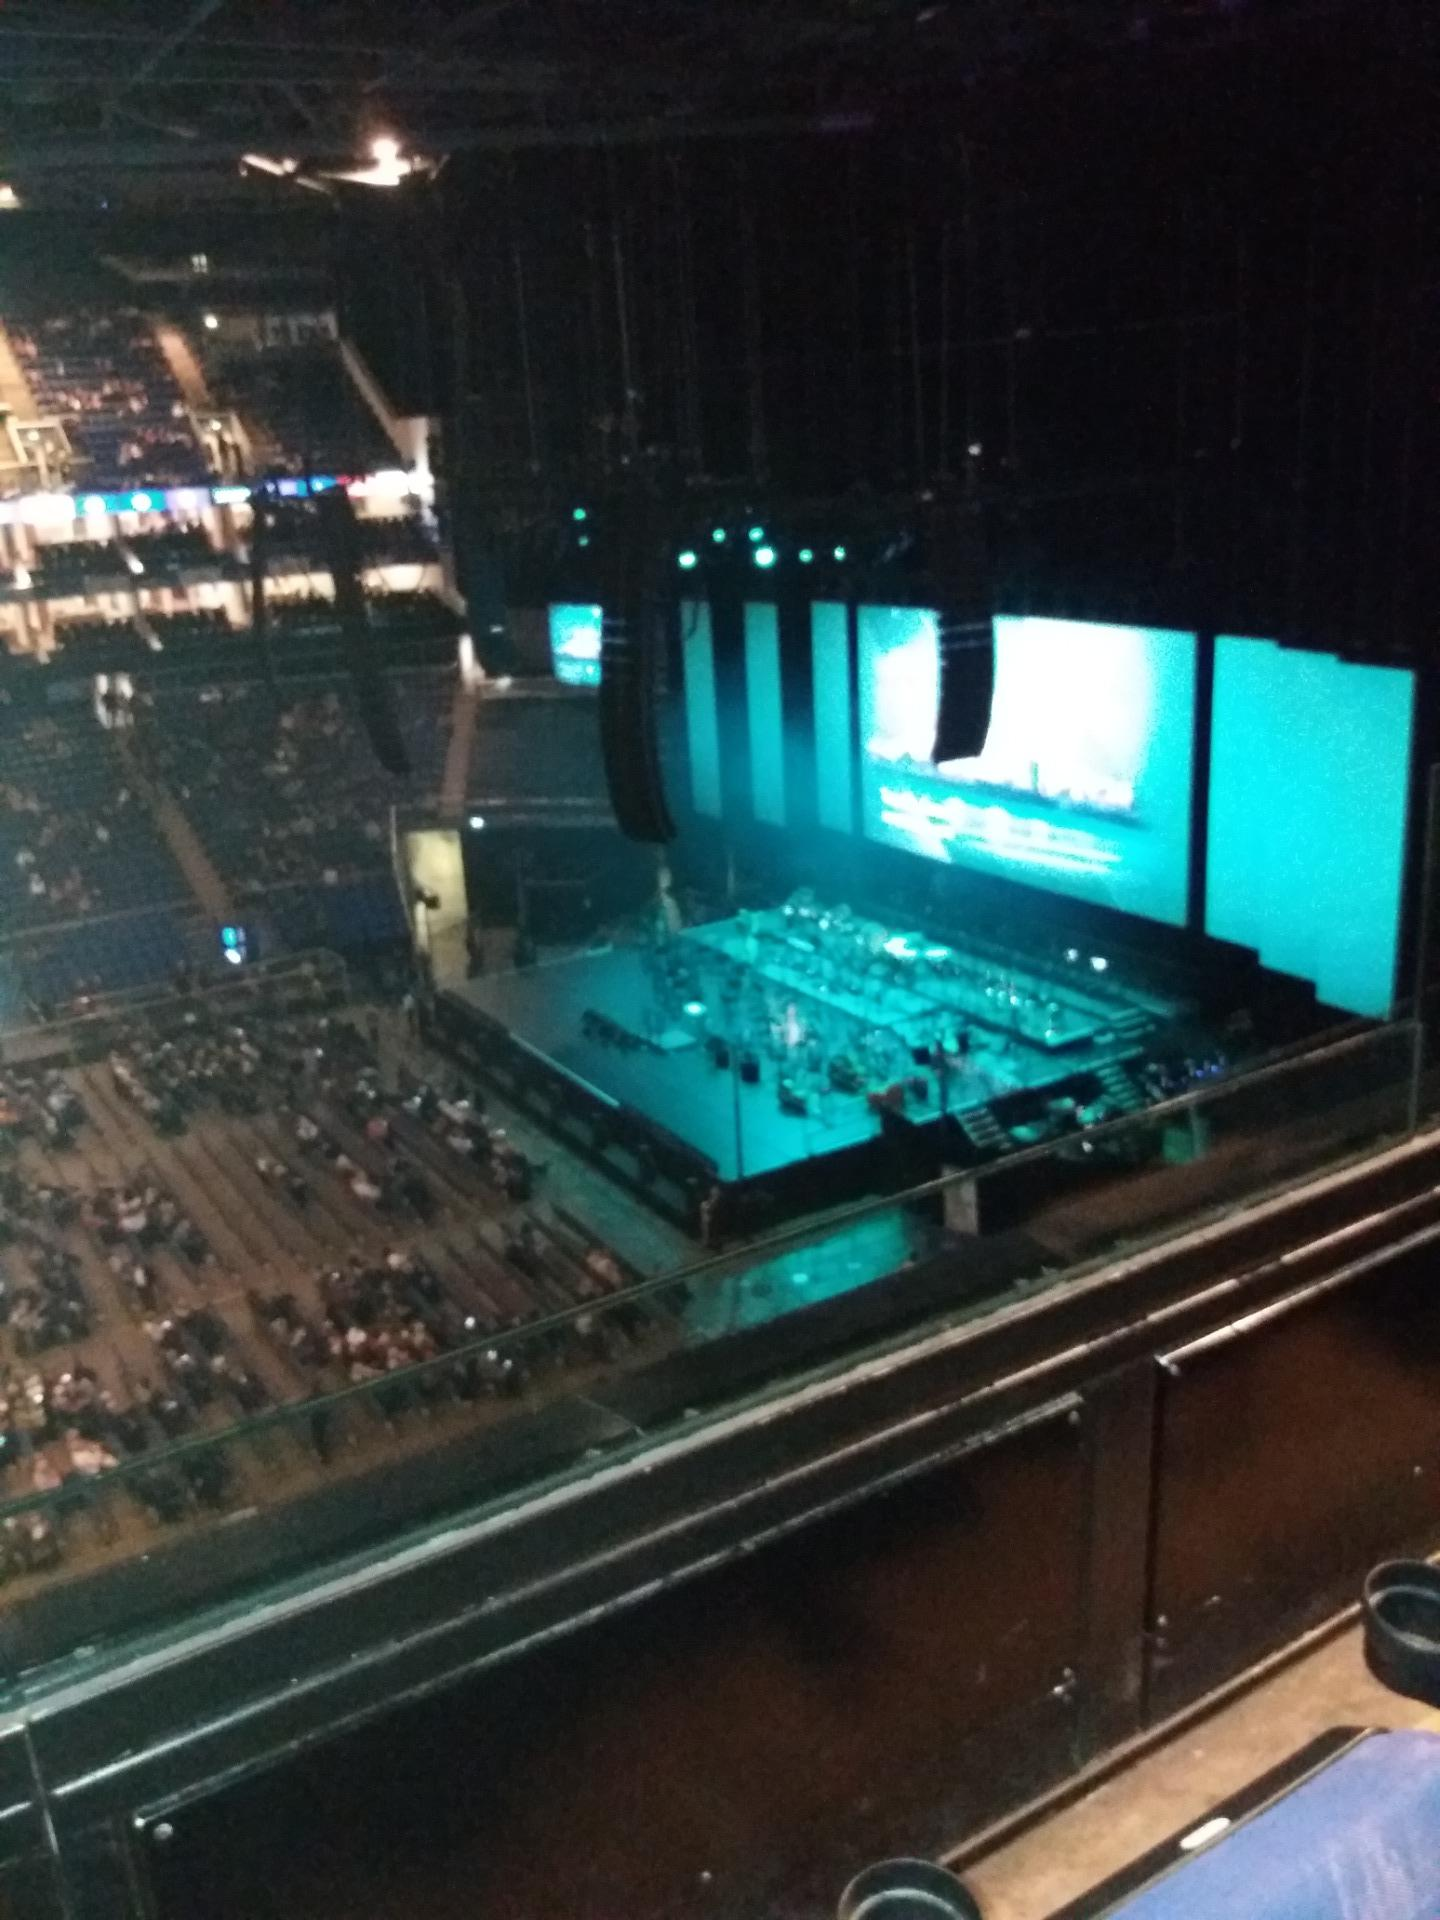 the O2 arena Section 420 Row B Seat 928